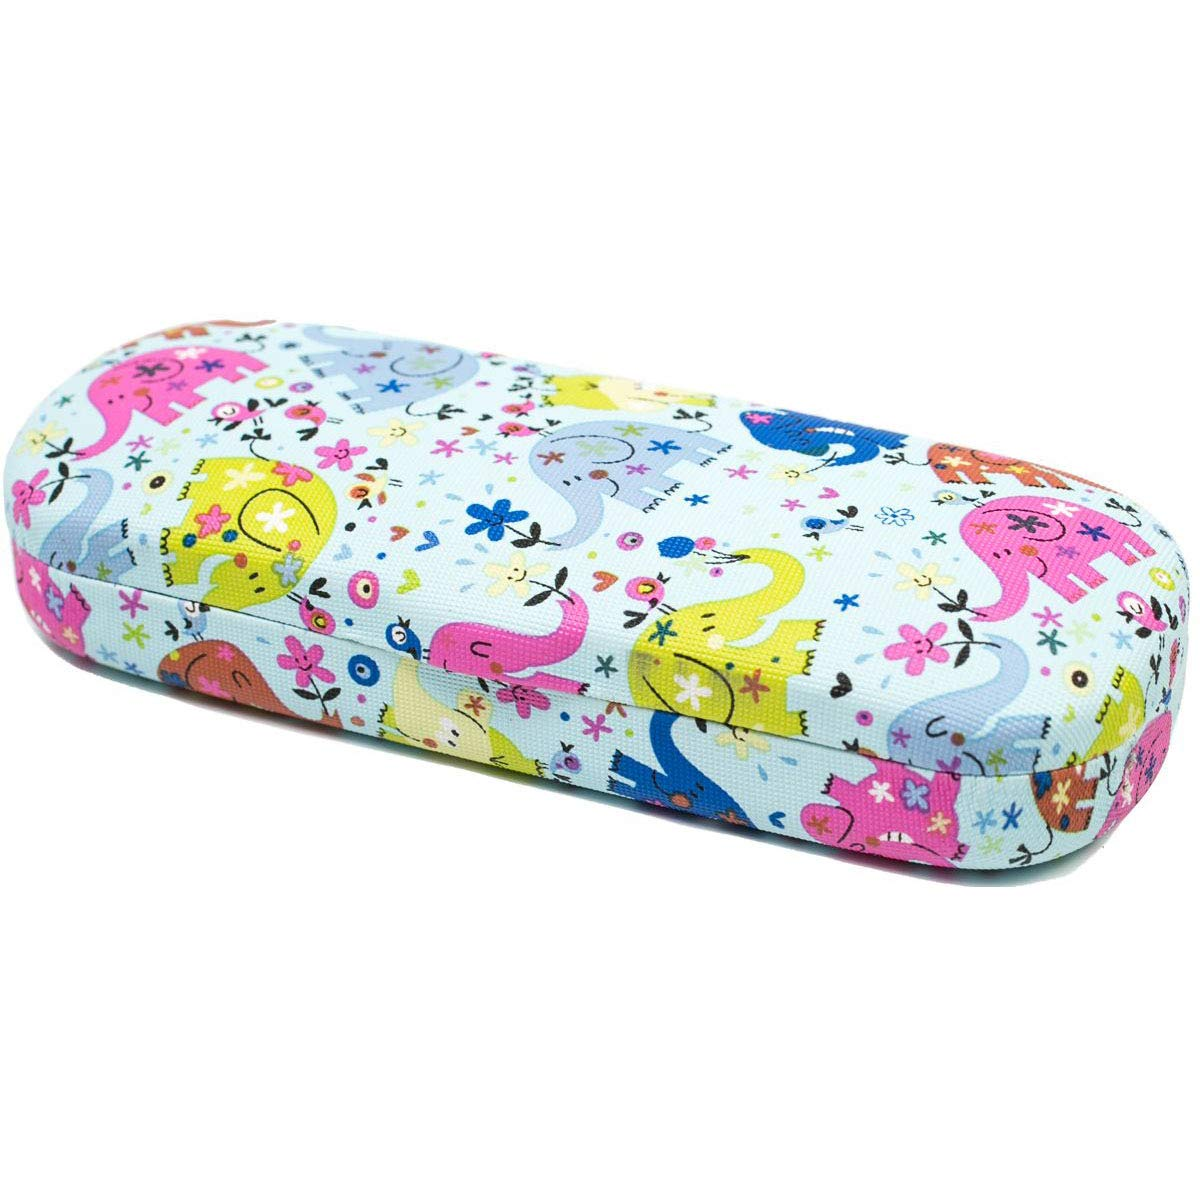 Handmade Russian Glasses case for a boy, blue with a color print, on a solid basis, covered with artificial leather by RuPost